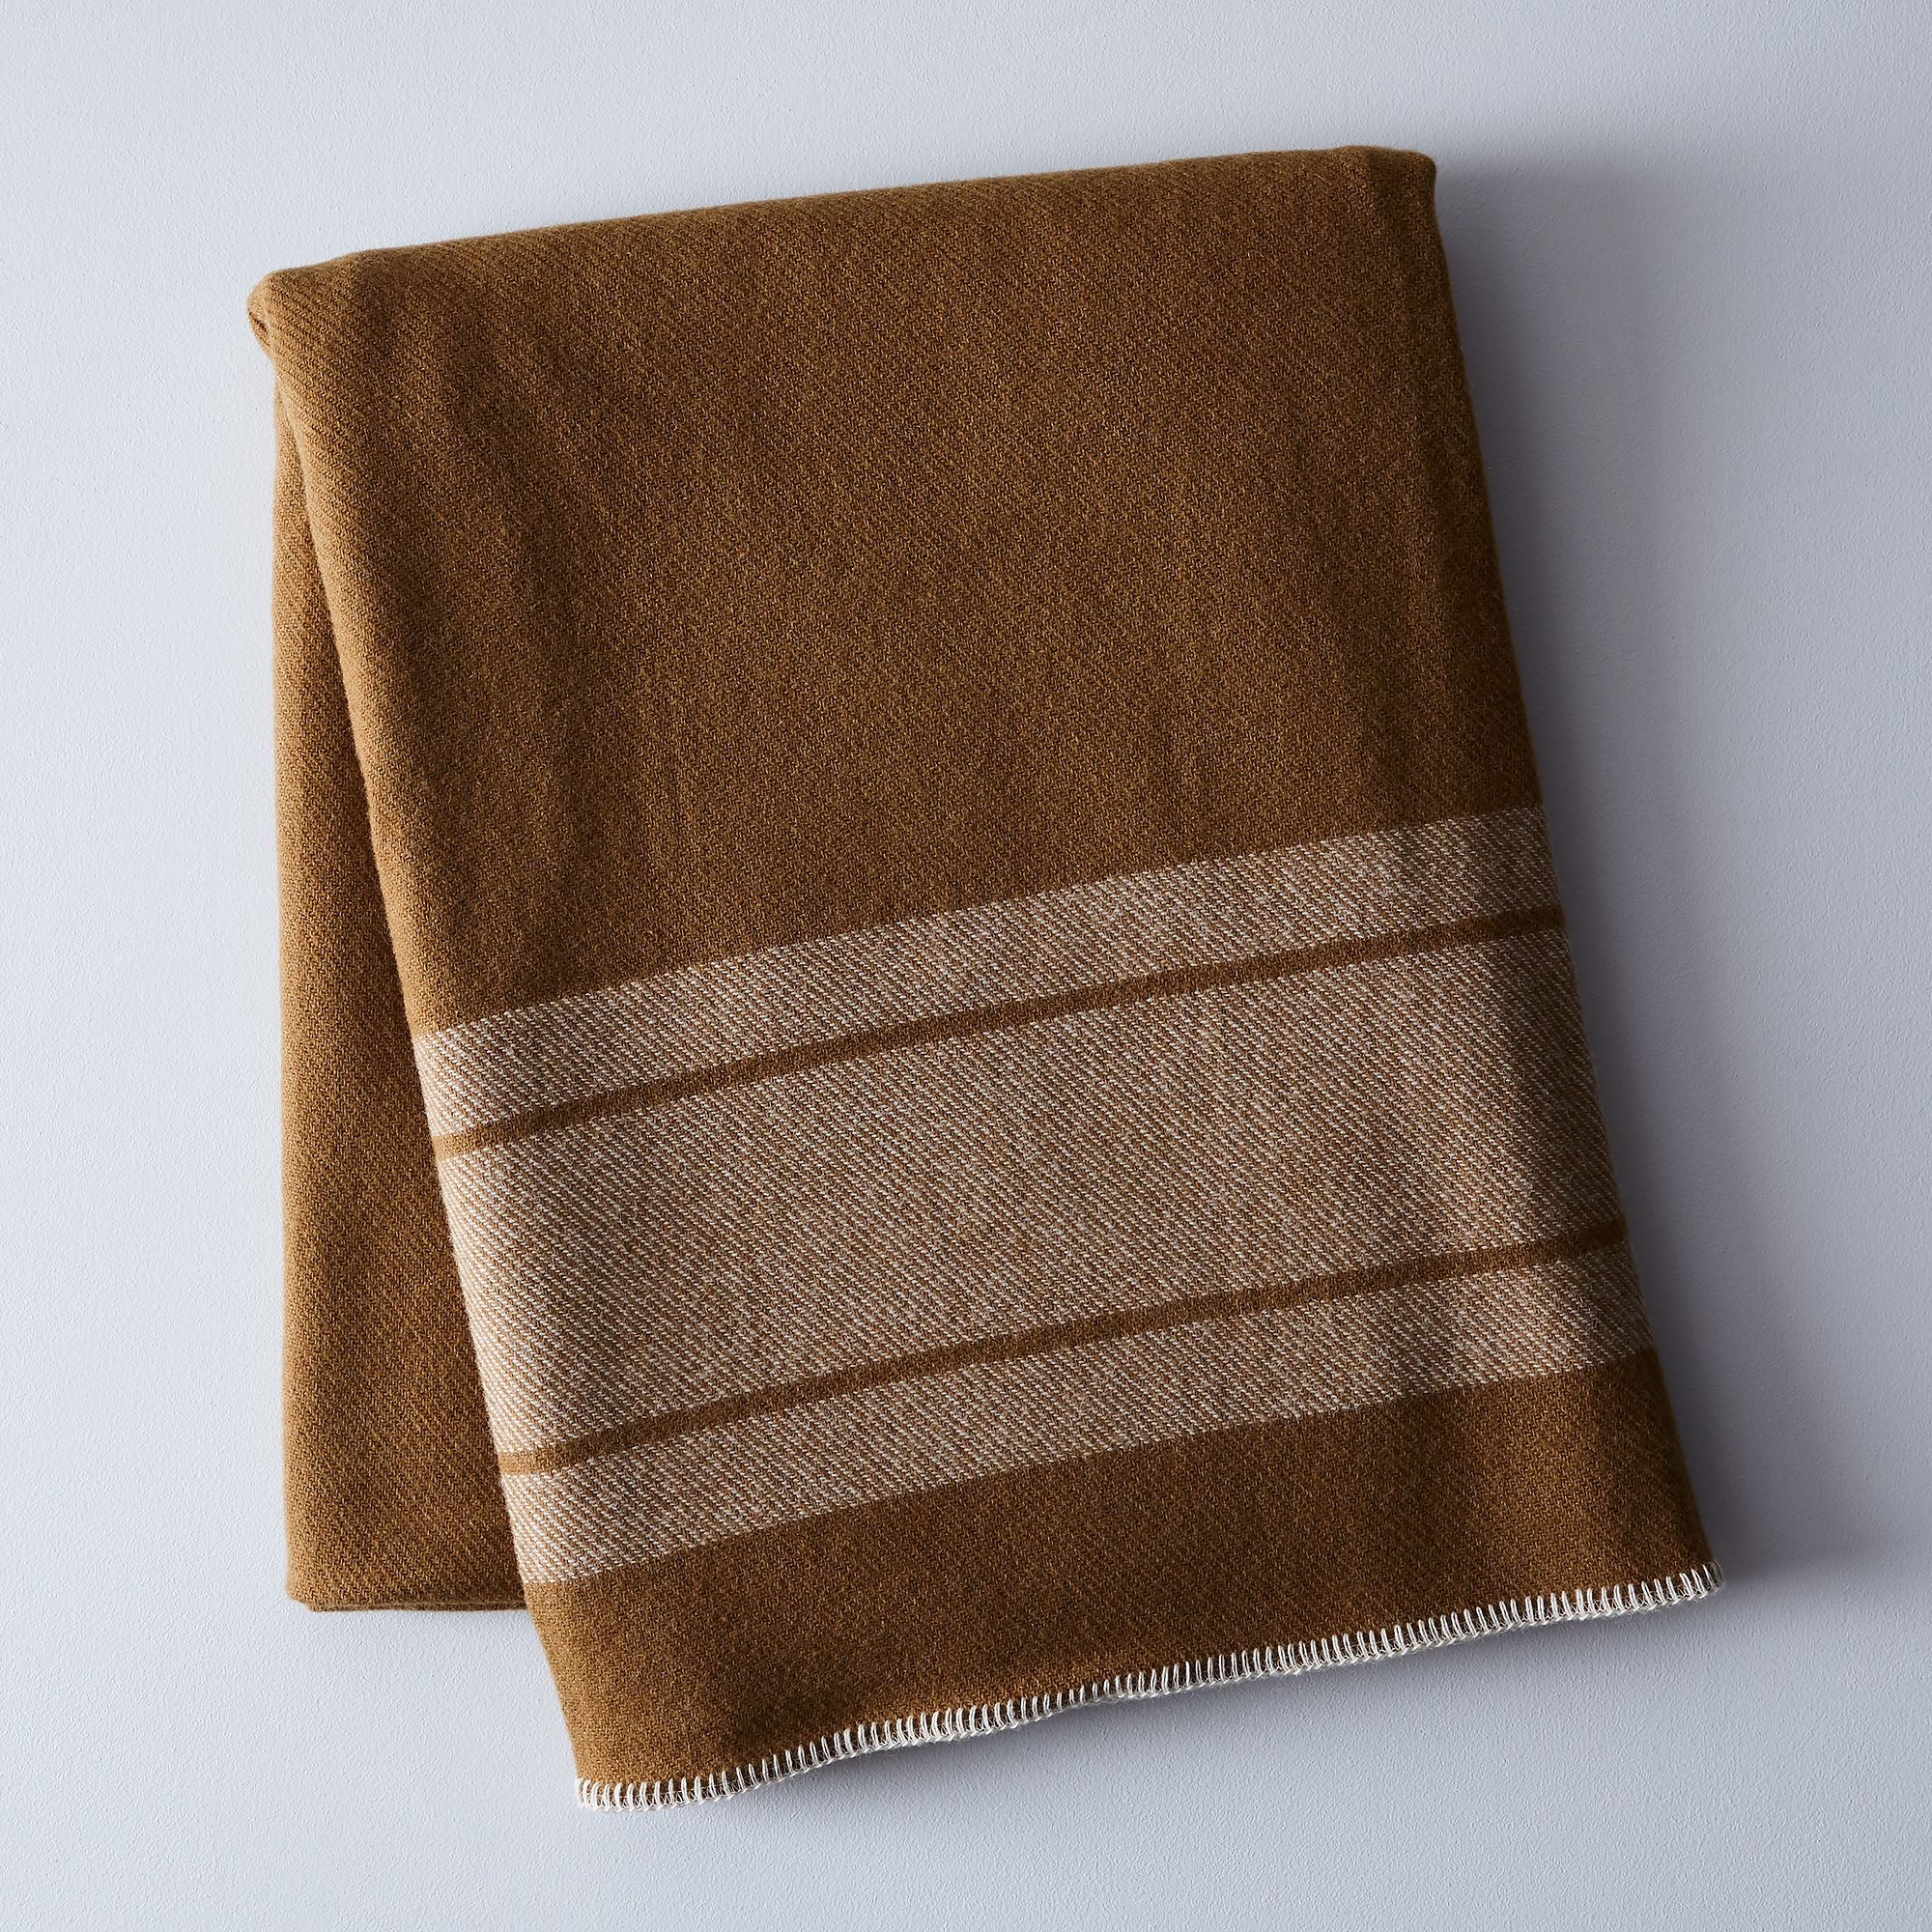 C605f8dc e8af 4259 b842 1b70be8901cb  2017 0907 amana woolen mill camp blanket tan natural silo rocky luten 011